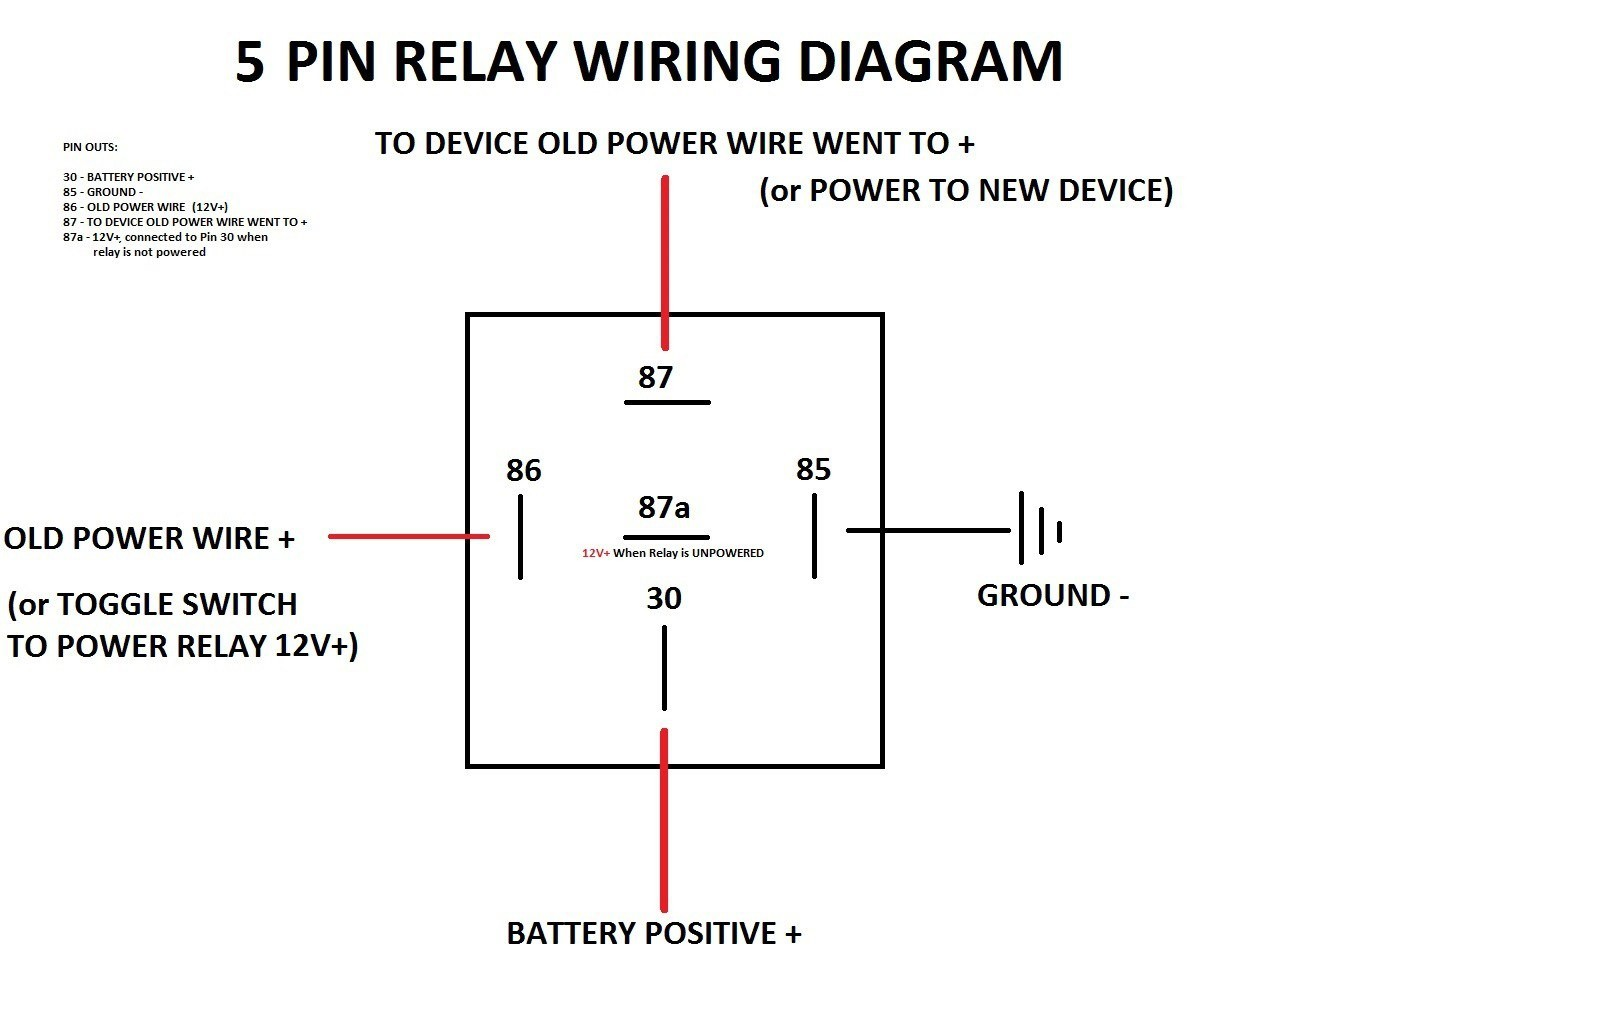 5 pin relay diagram Download 5 Pin Relay Wiring Diagram Unique Bosch 12v Relay Wiring